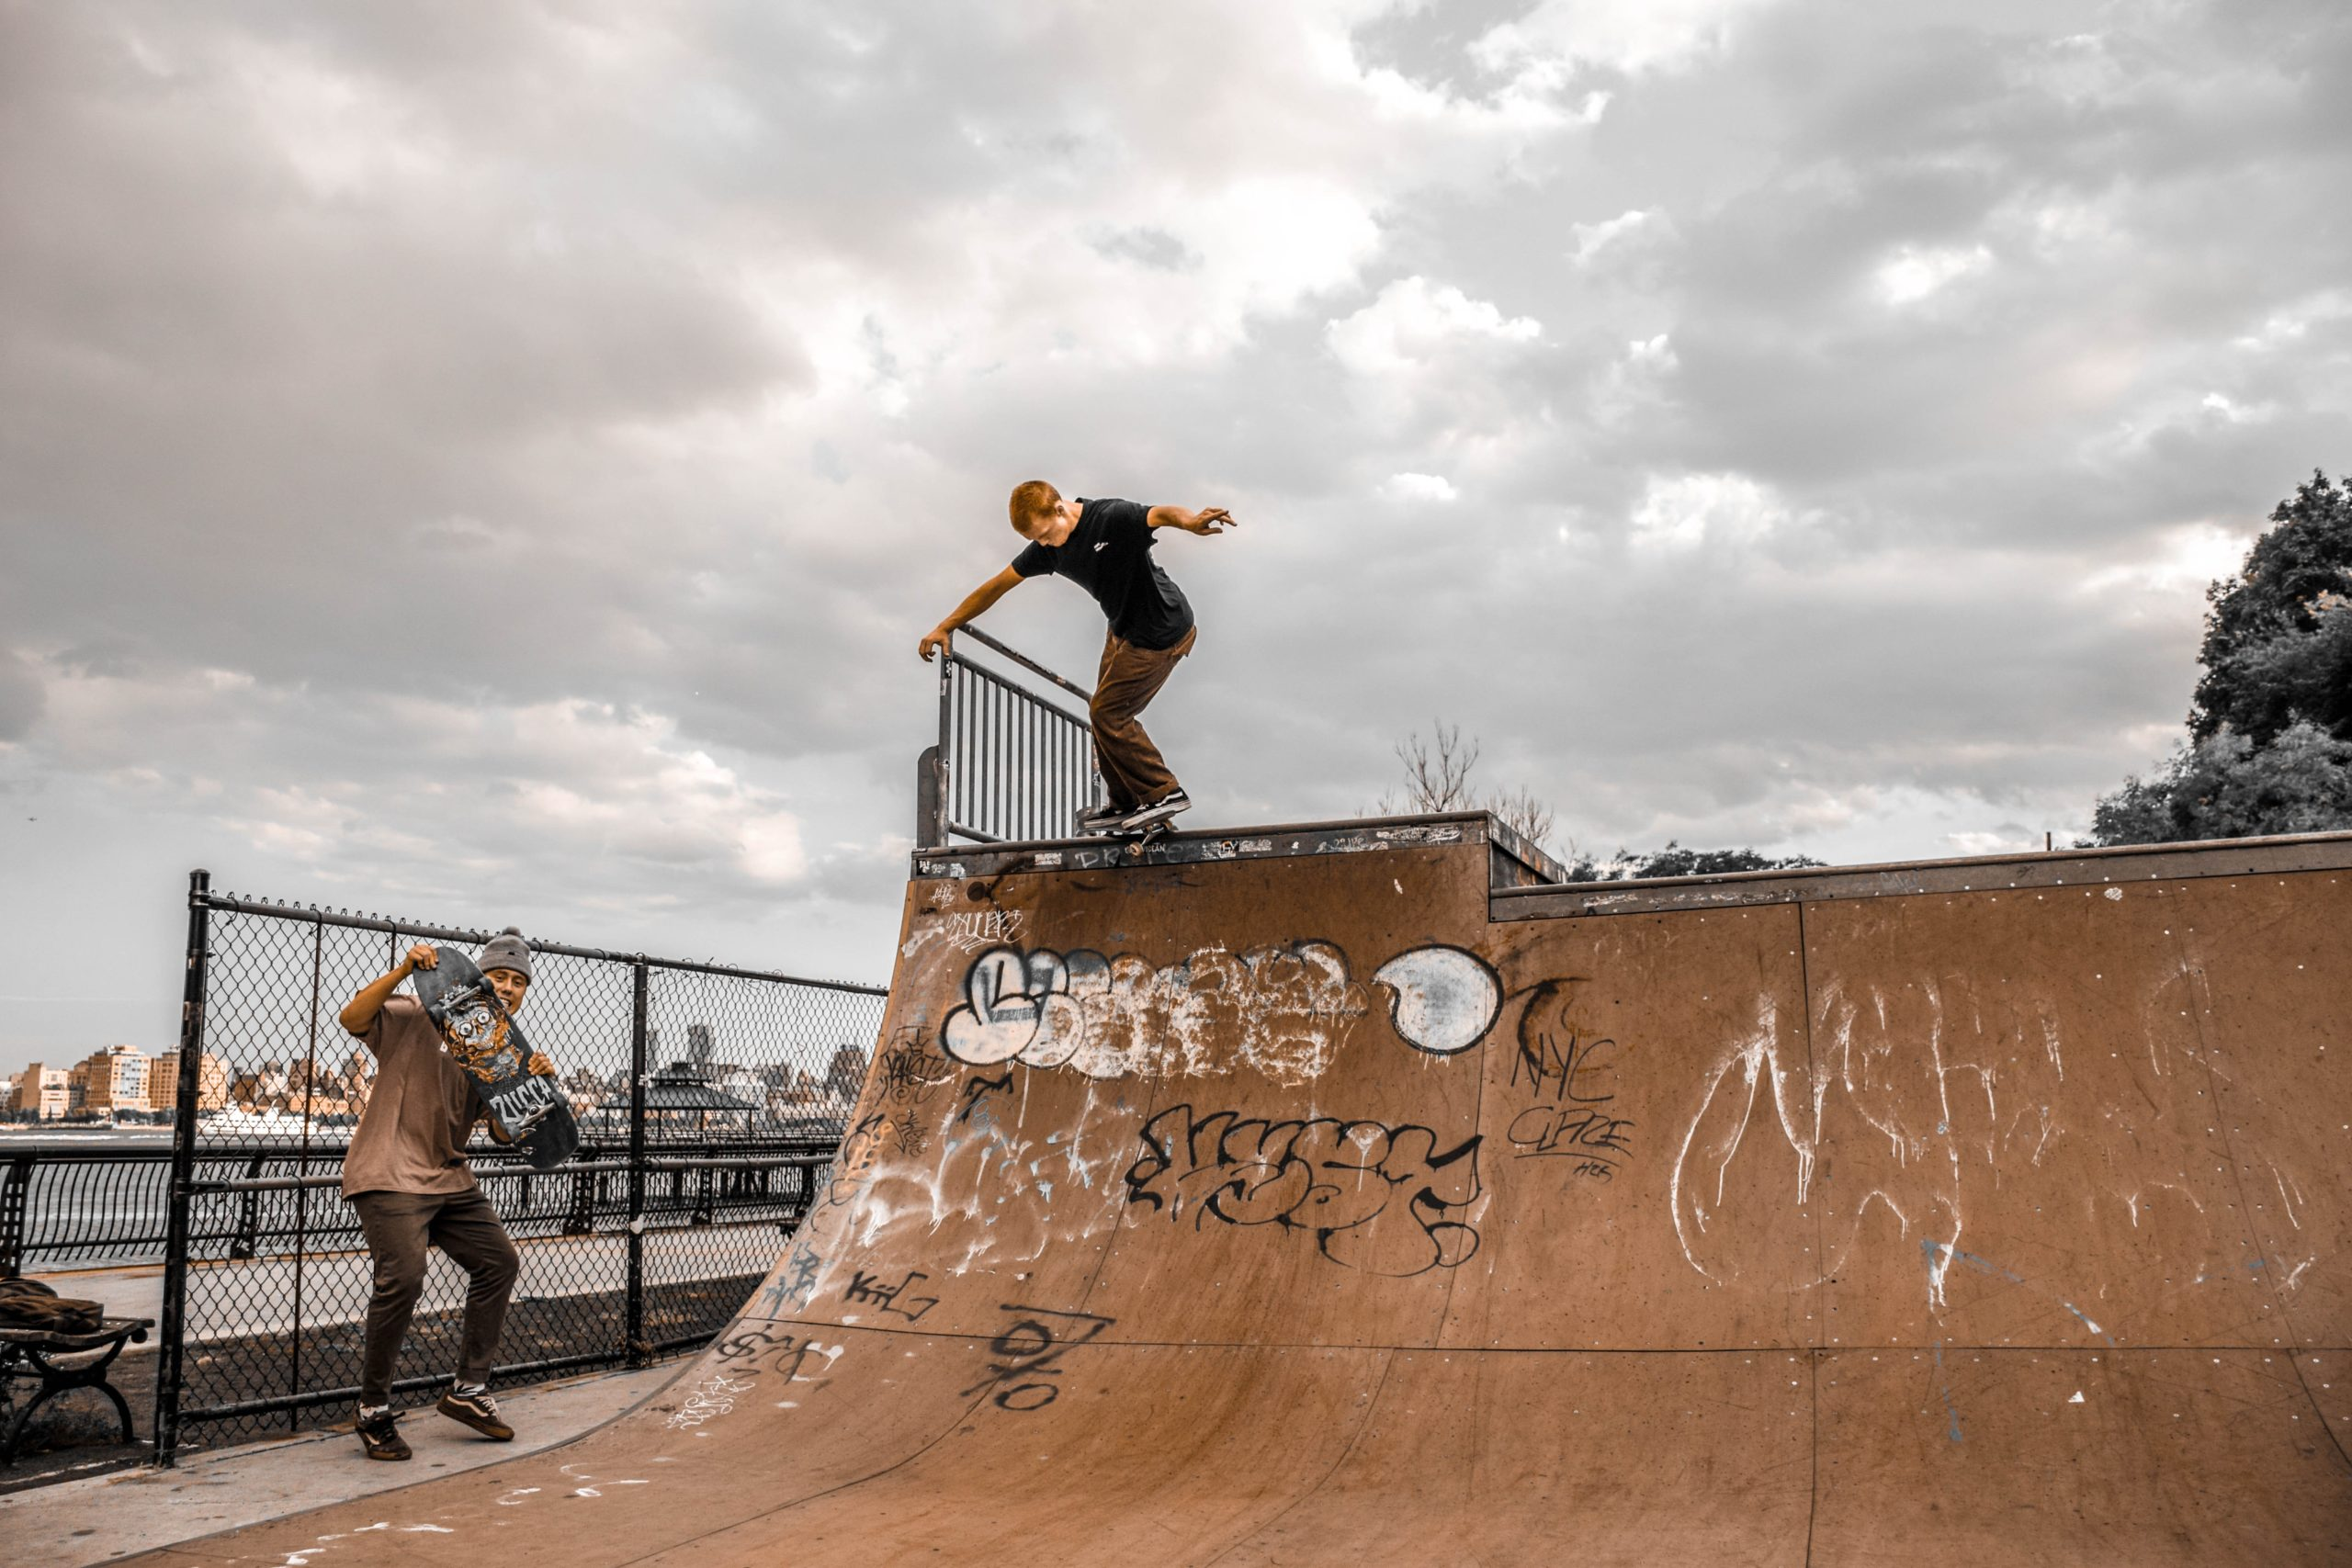 Rules Of Conduct For Skaters At A Skate Park